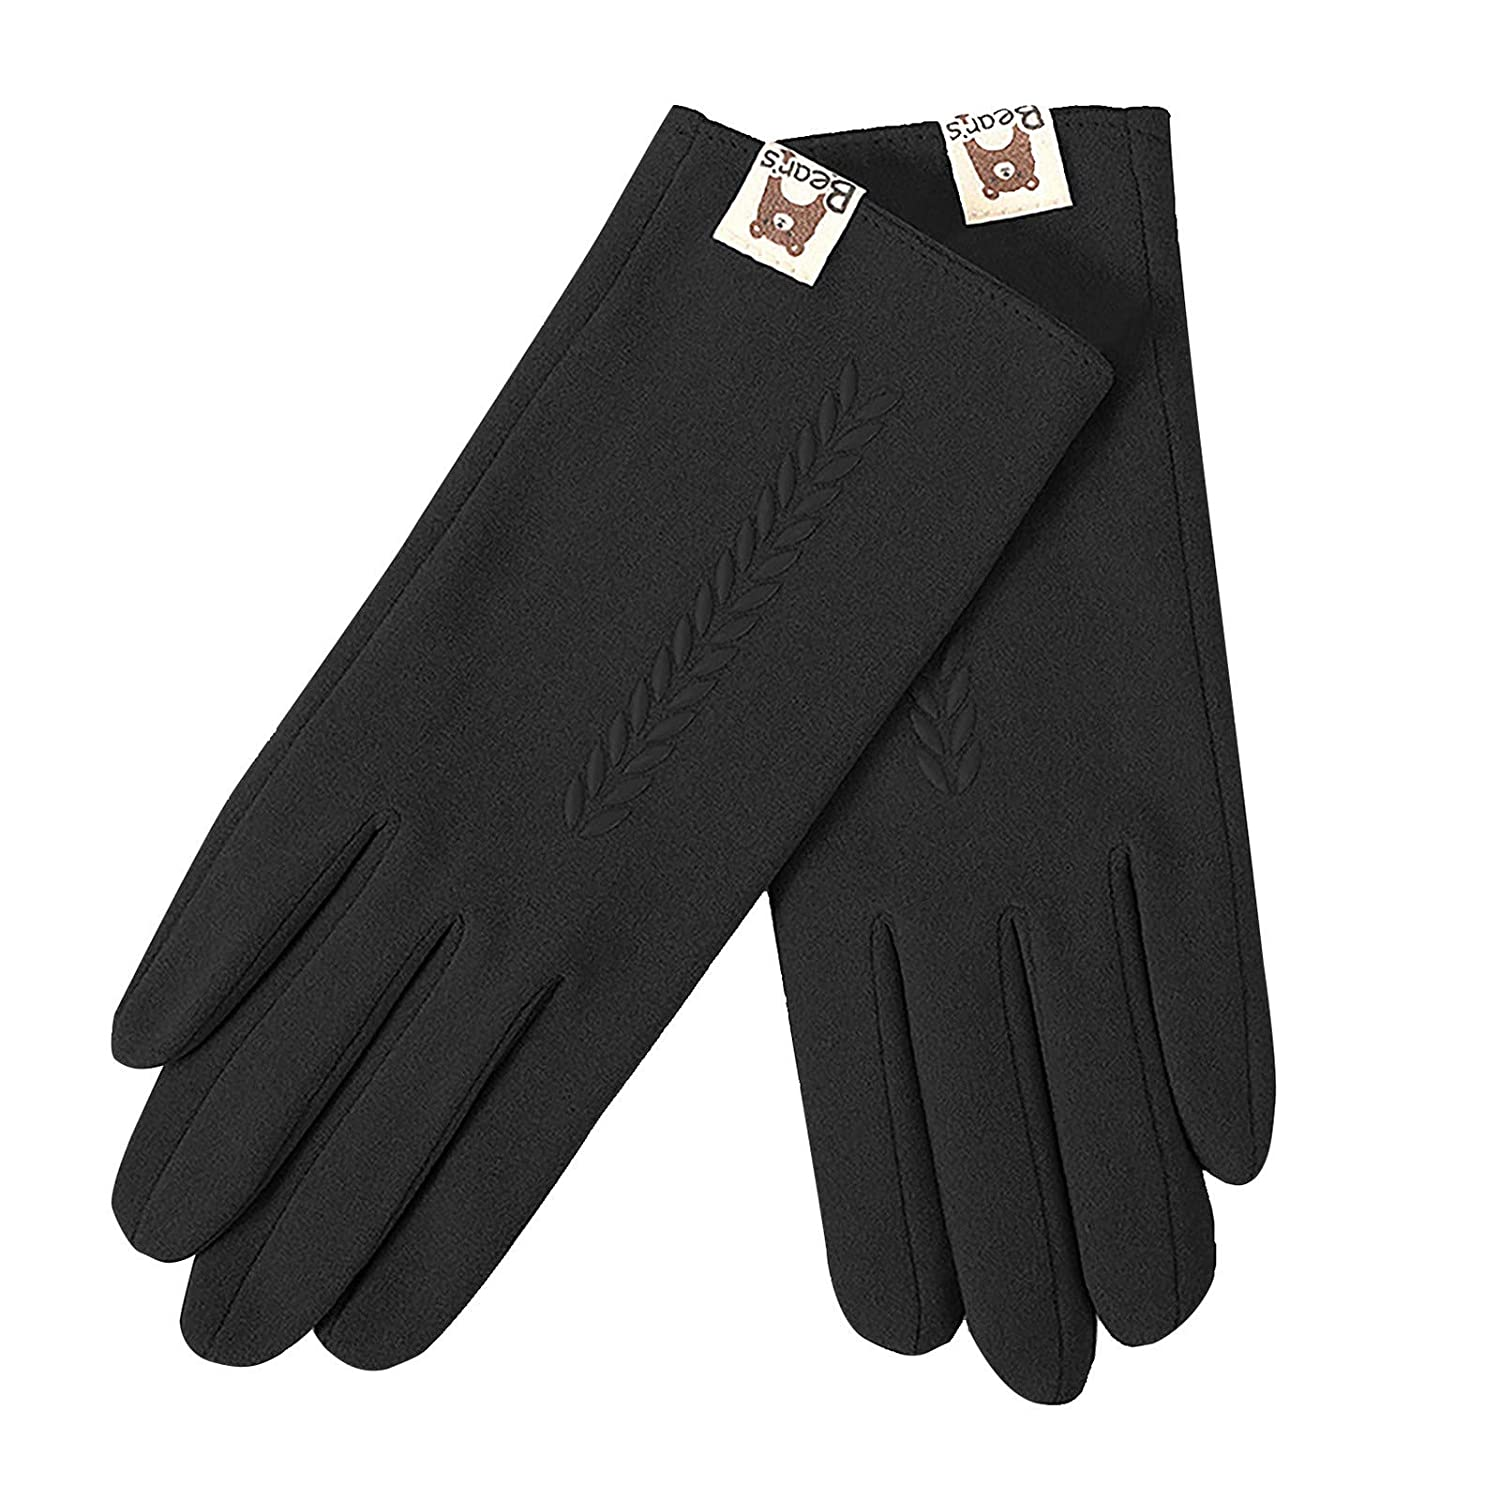 【Fast Delivery 6-14days】Women Winter Gloves Warm Touch Screen Gloves Chamois Leather Driving Gloves Fleece Thermal Gloves for Ladies